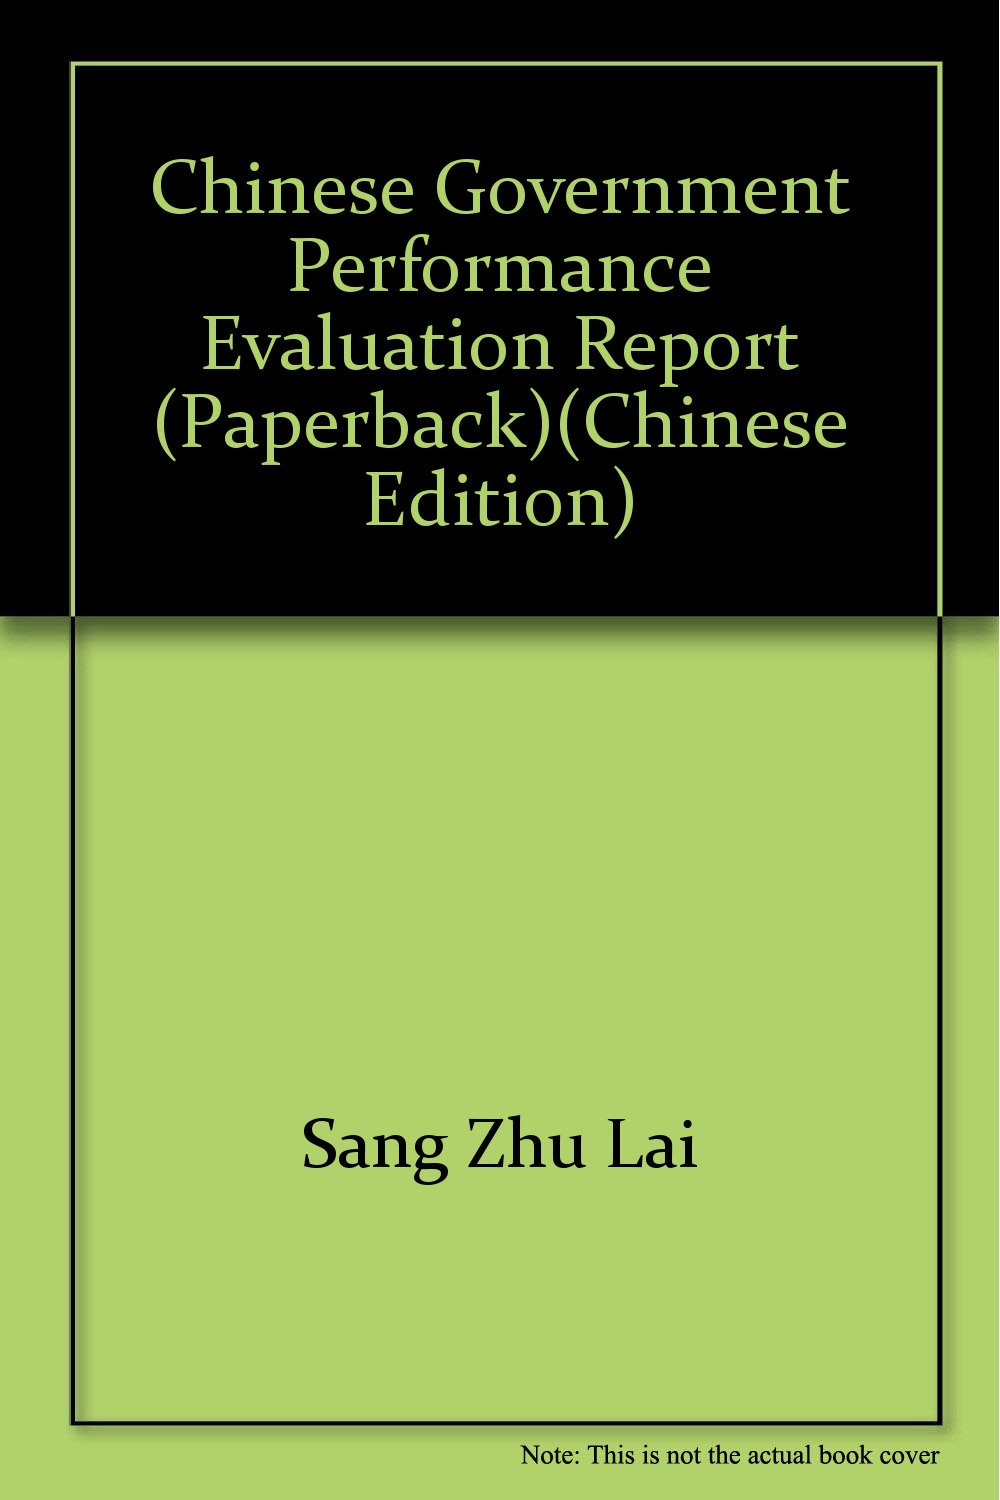 Chinese Government Performance Evaluation Report (Paperback